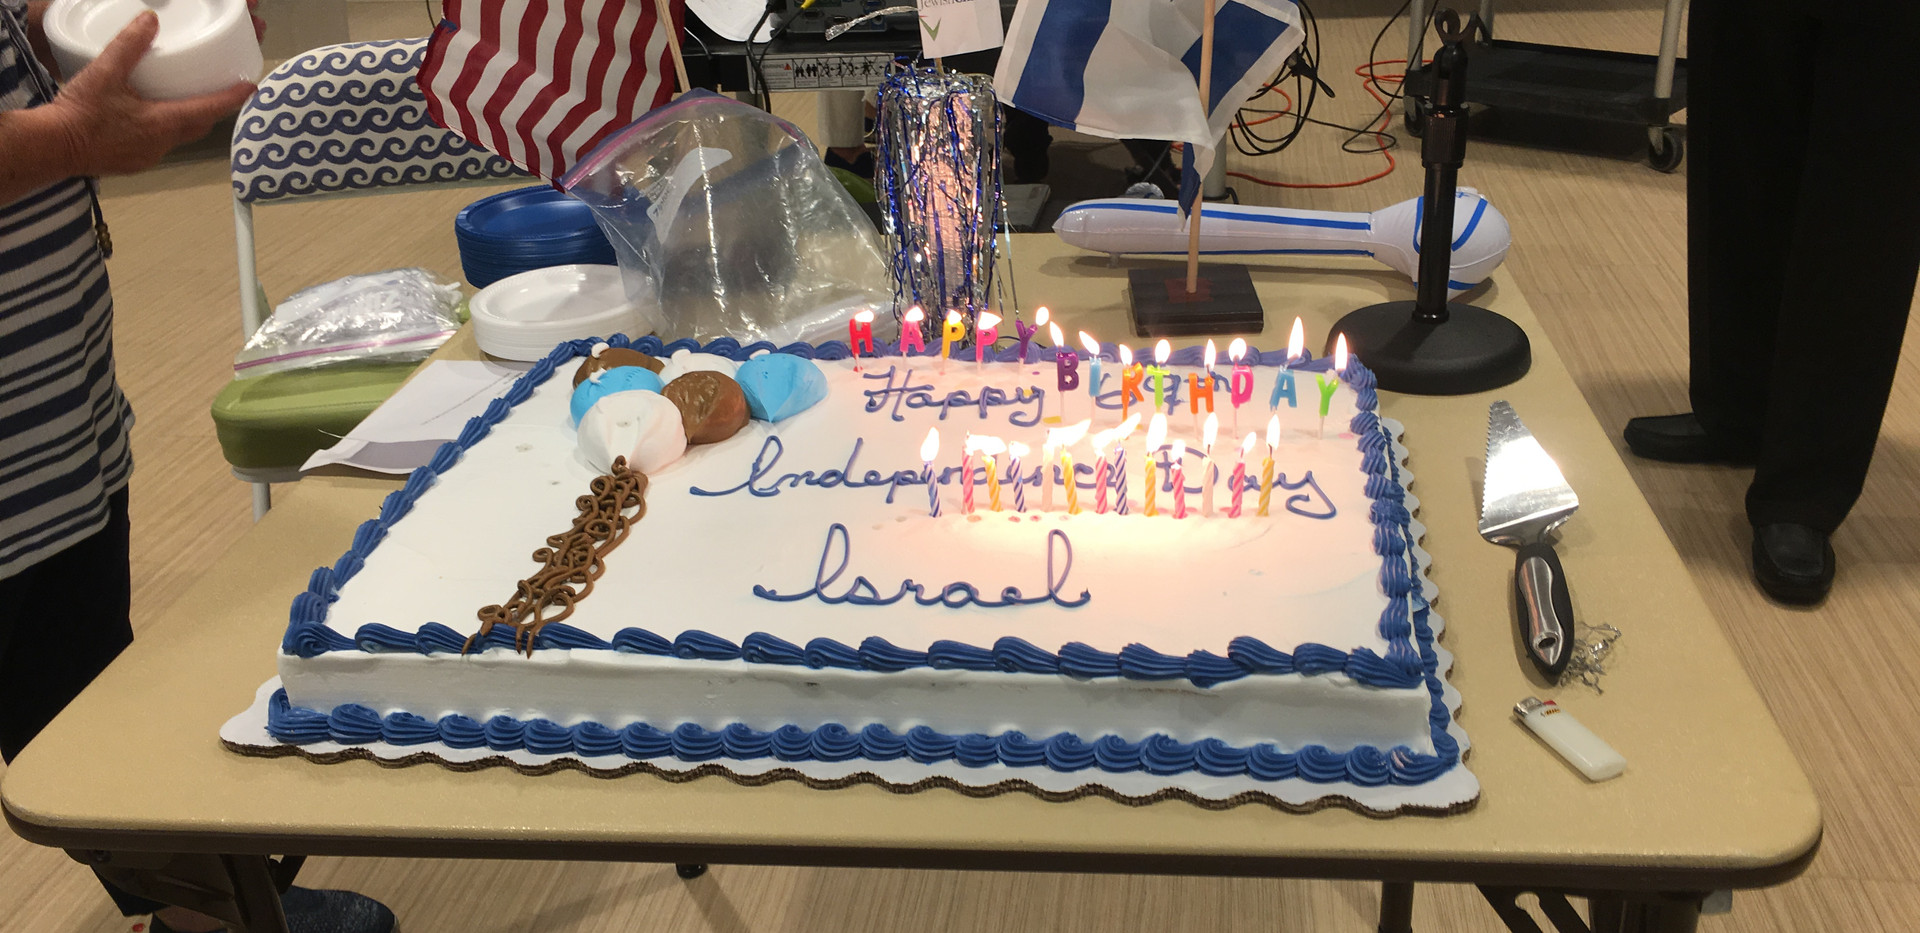 Israel Birthday.JPG